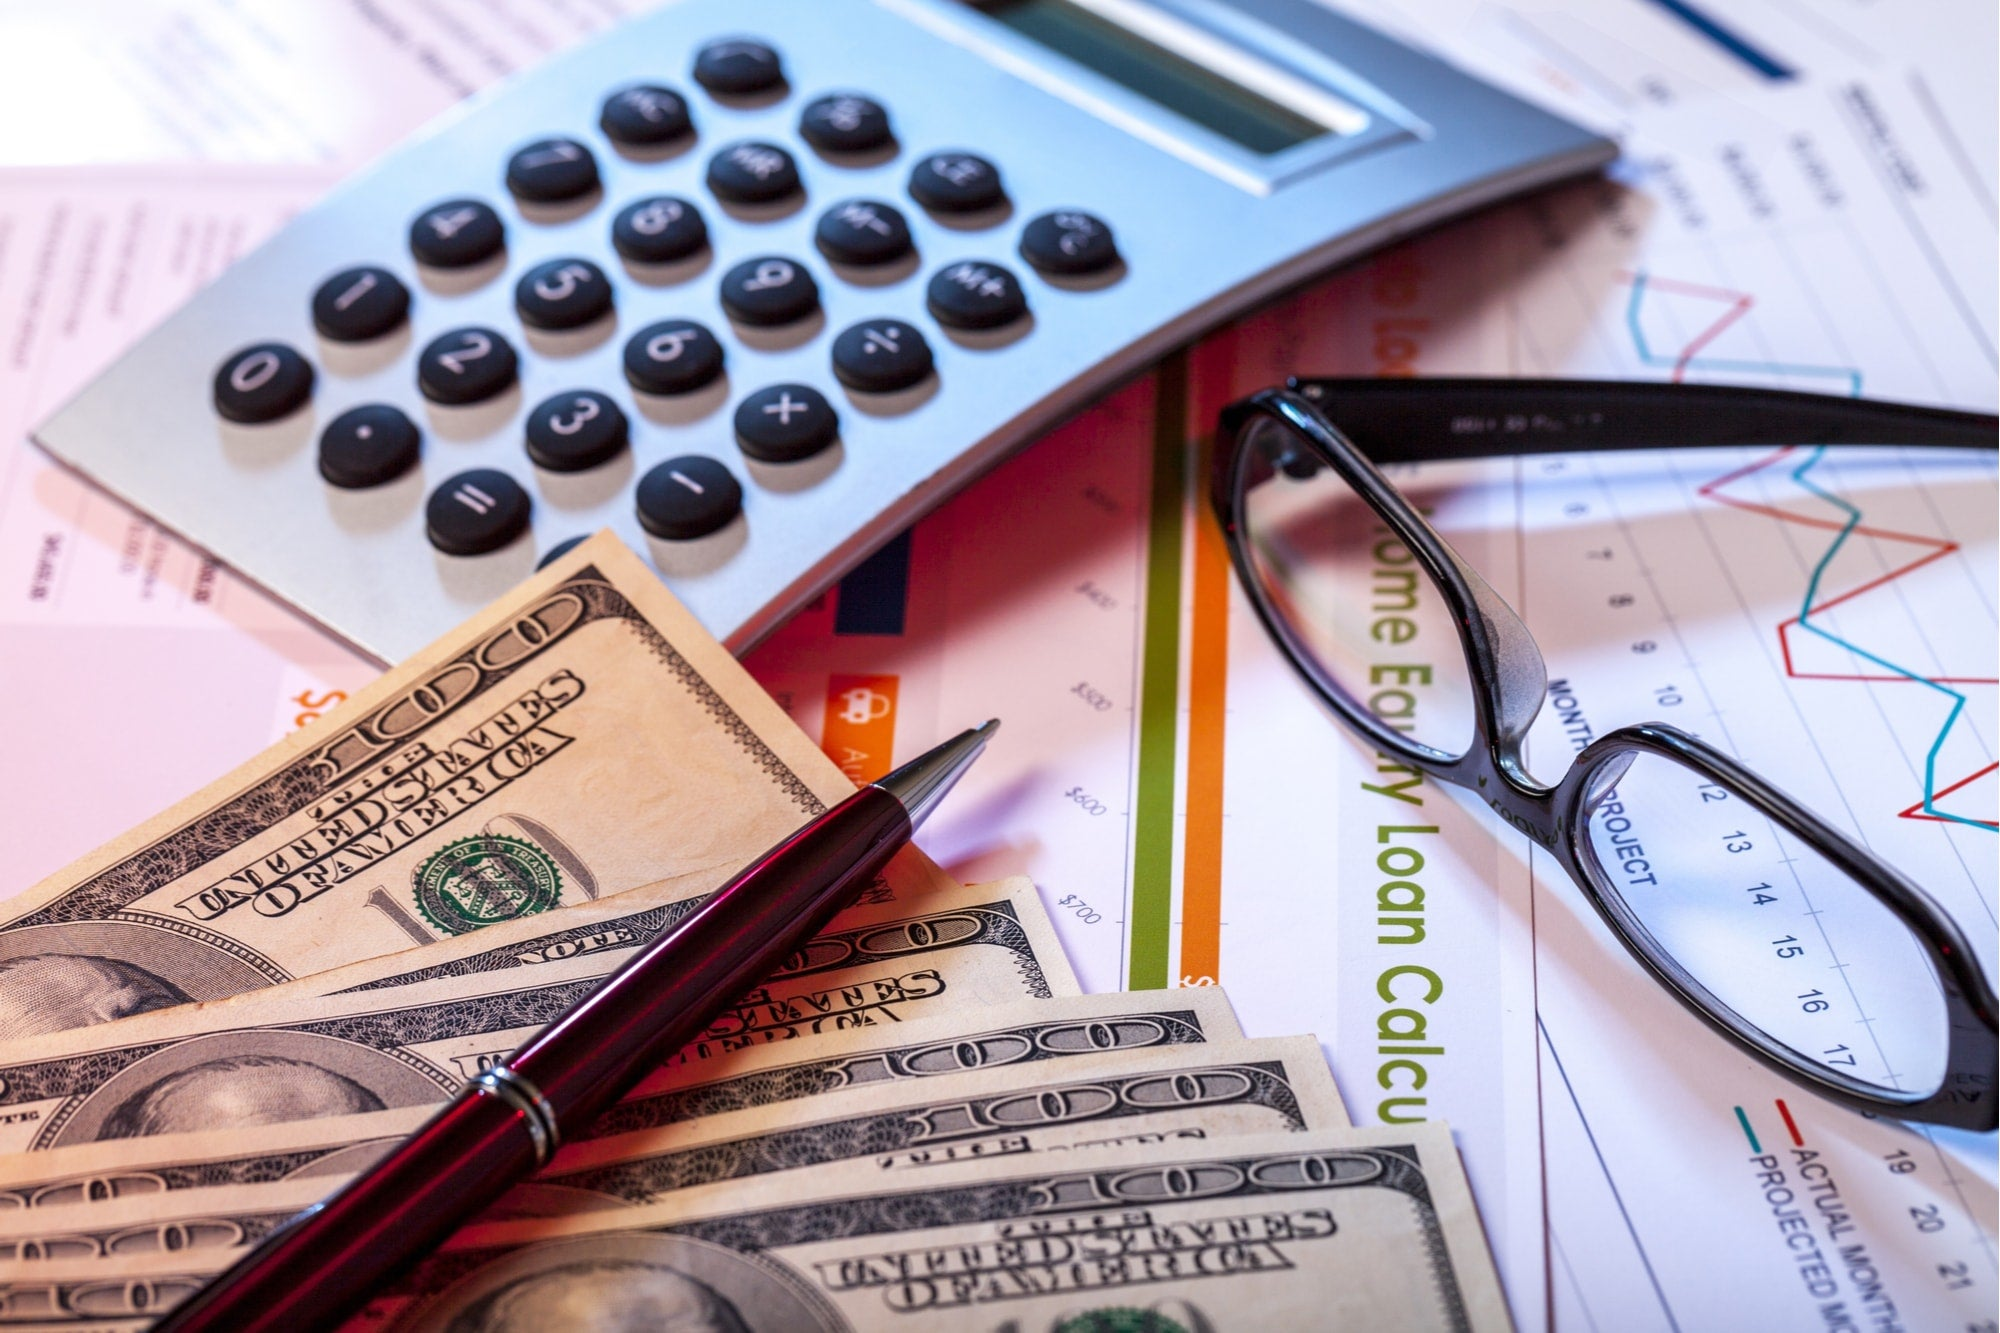 Financial Literacy in the Caribbean: The Case of Barbados